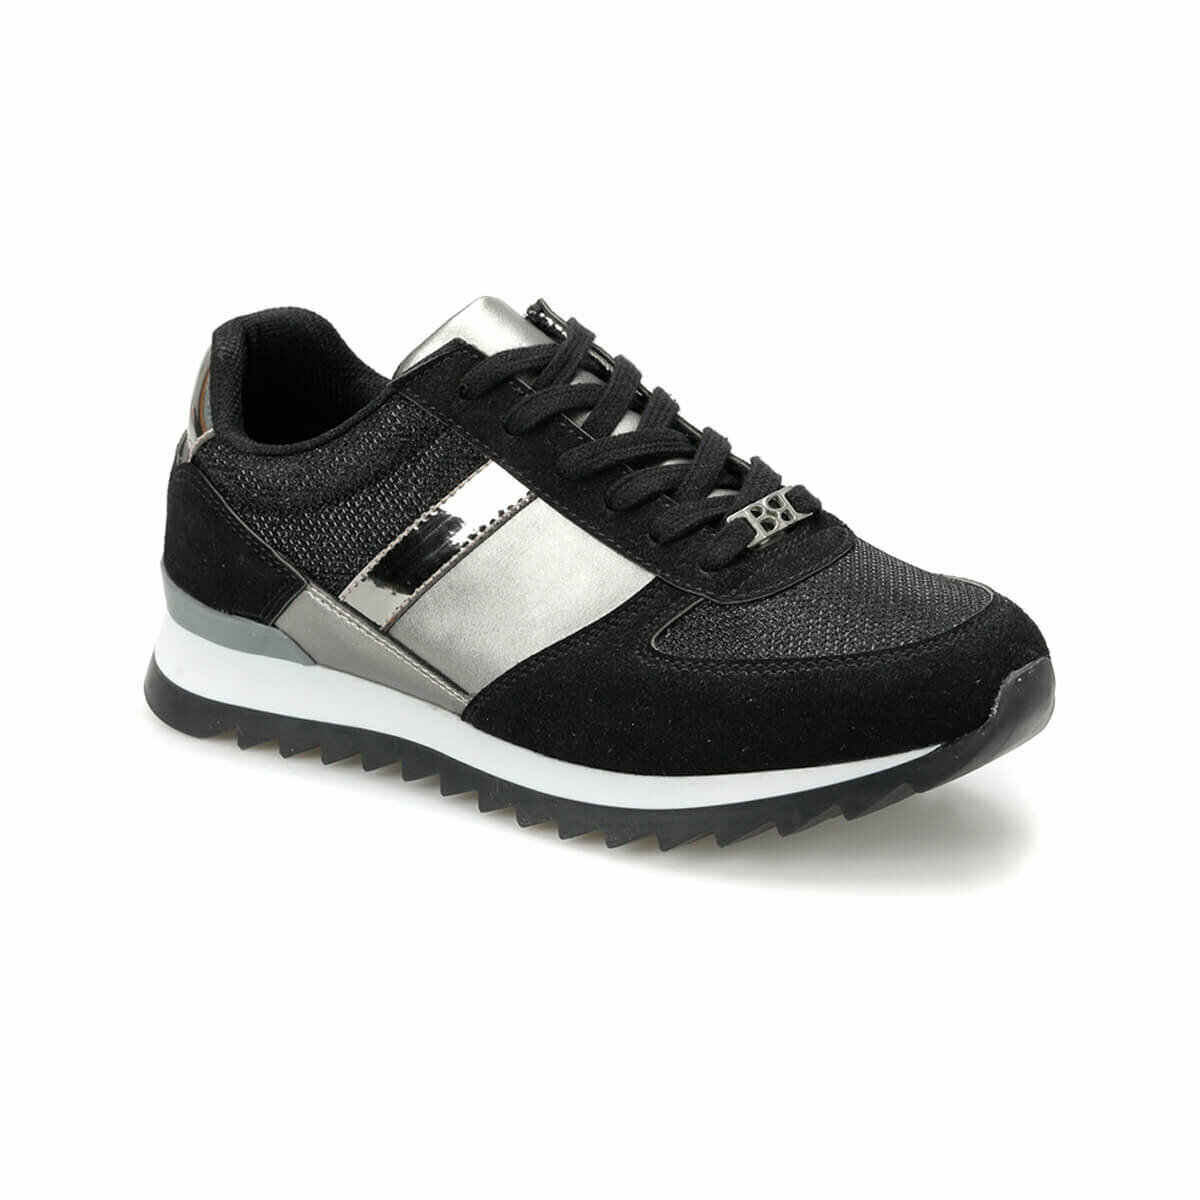 FLO S1960-19IY Black Women 'S Sports Shoes BUTIGO